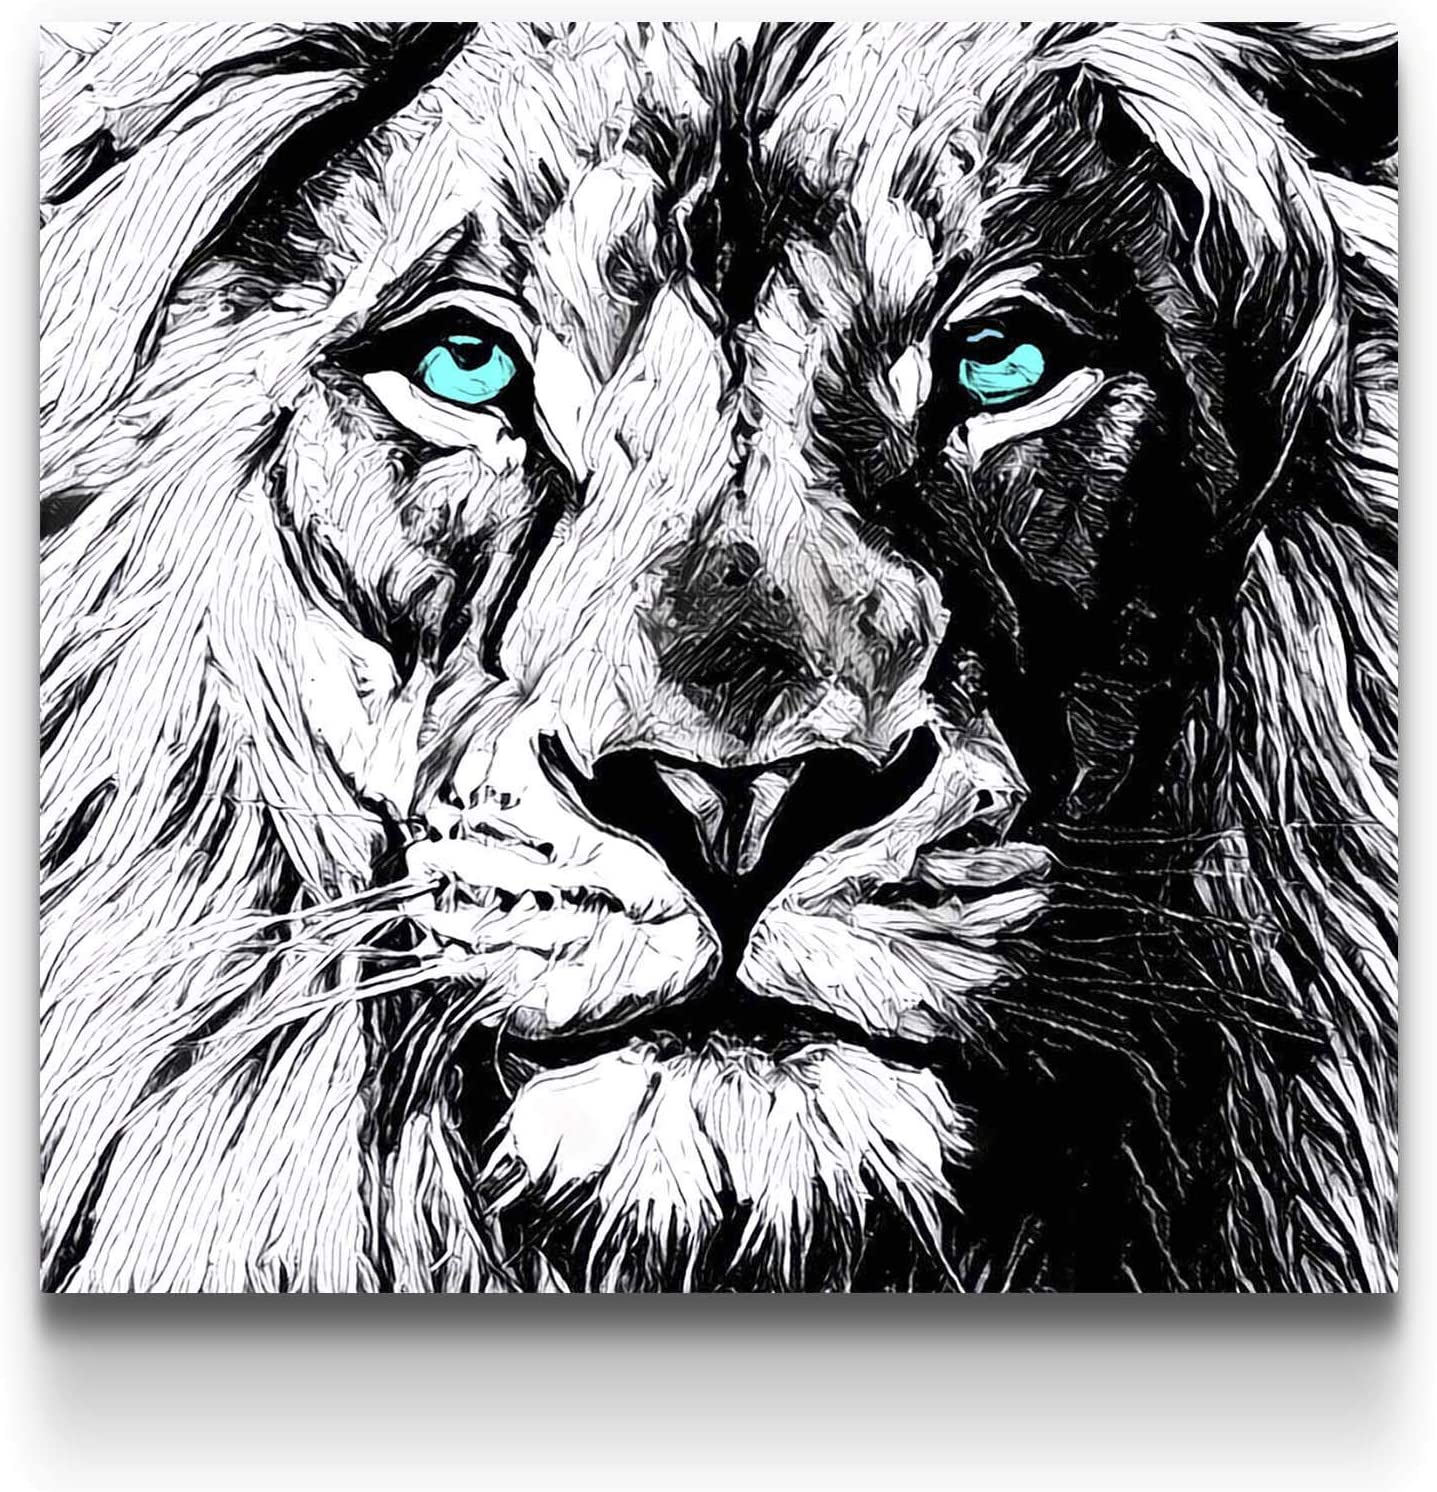 Amazon.com: Startonight Canvas Wall Art Black and White Abstract Lion Draw  Blue Eyes Animals Jungle, Framed Wall Art 32 by 32 Inches: Posters & Prints